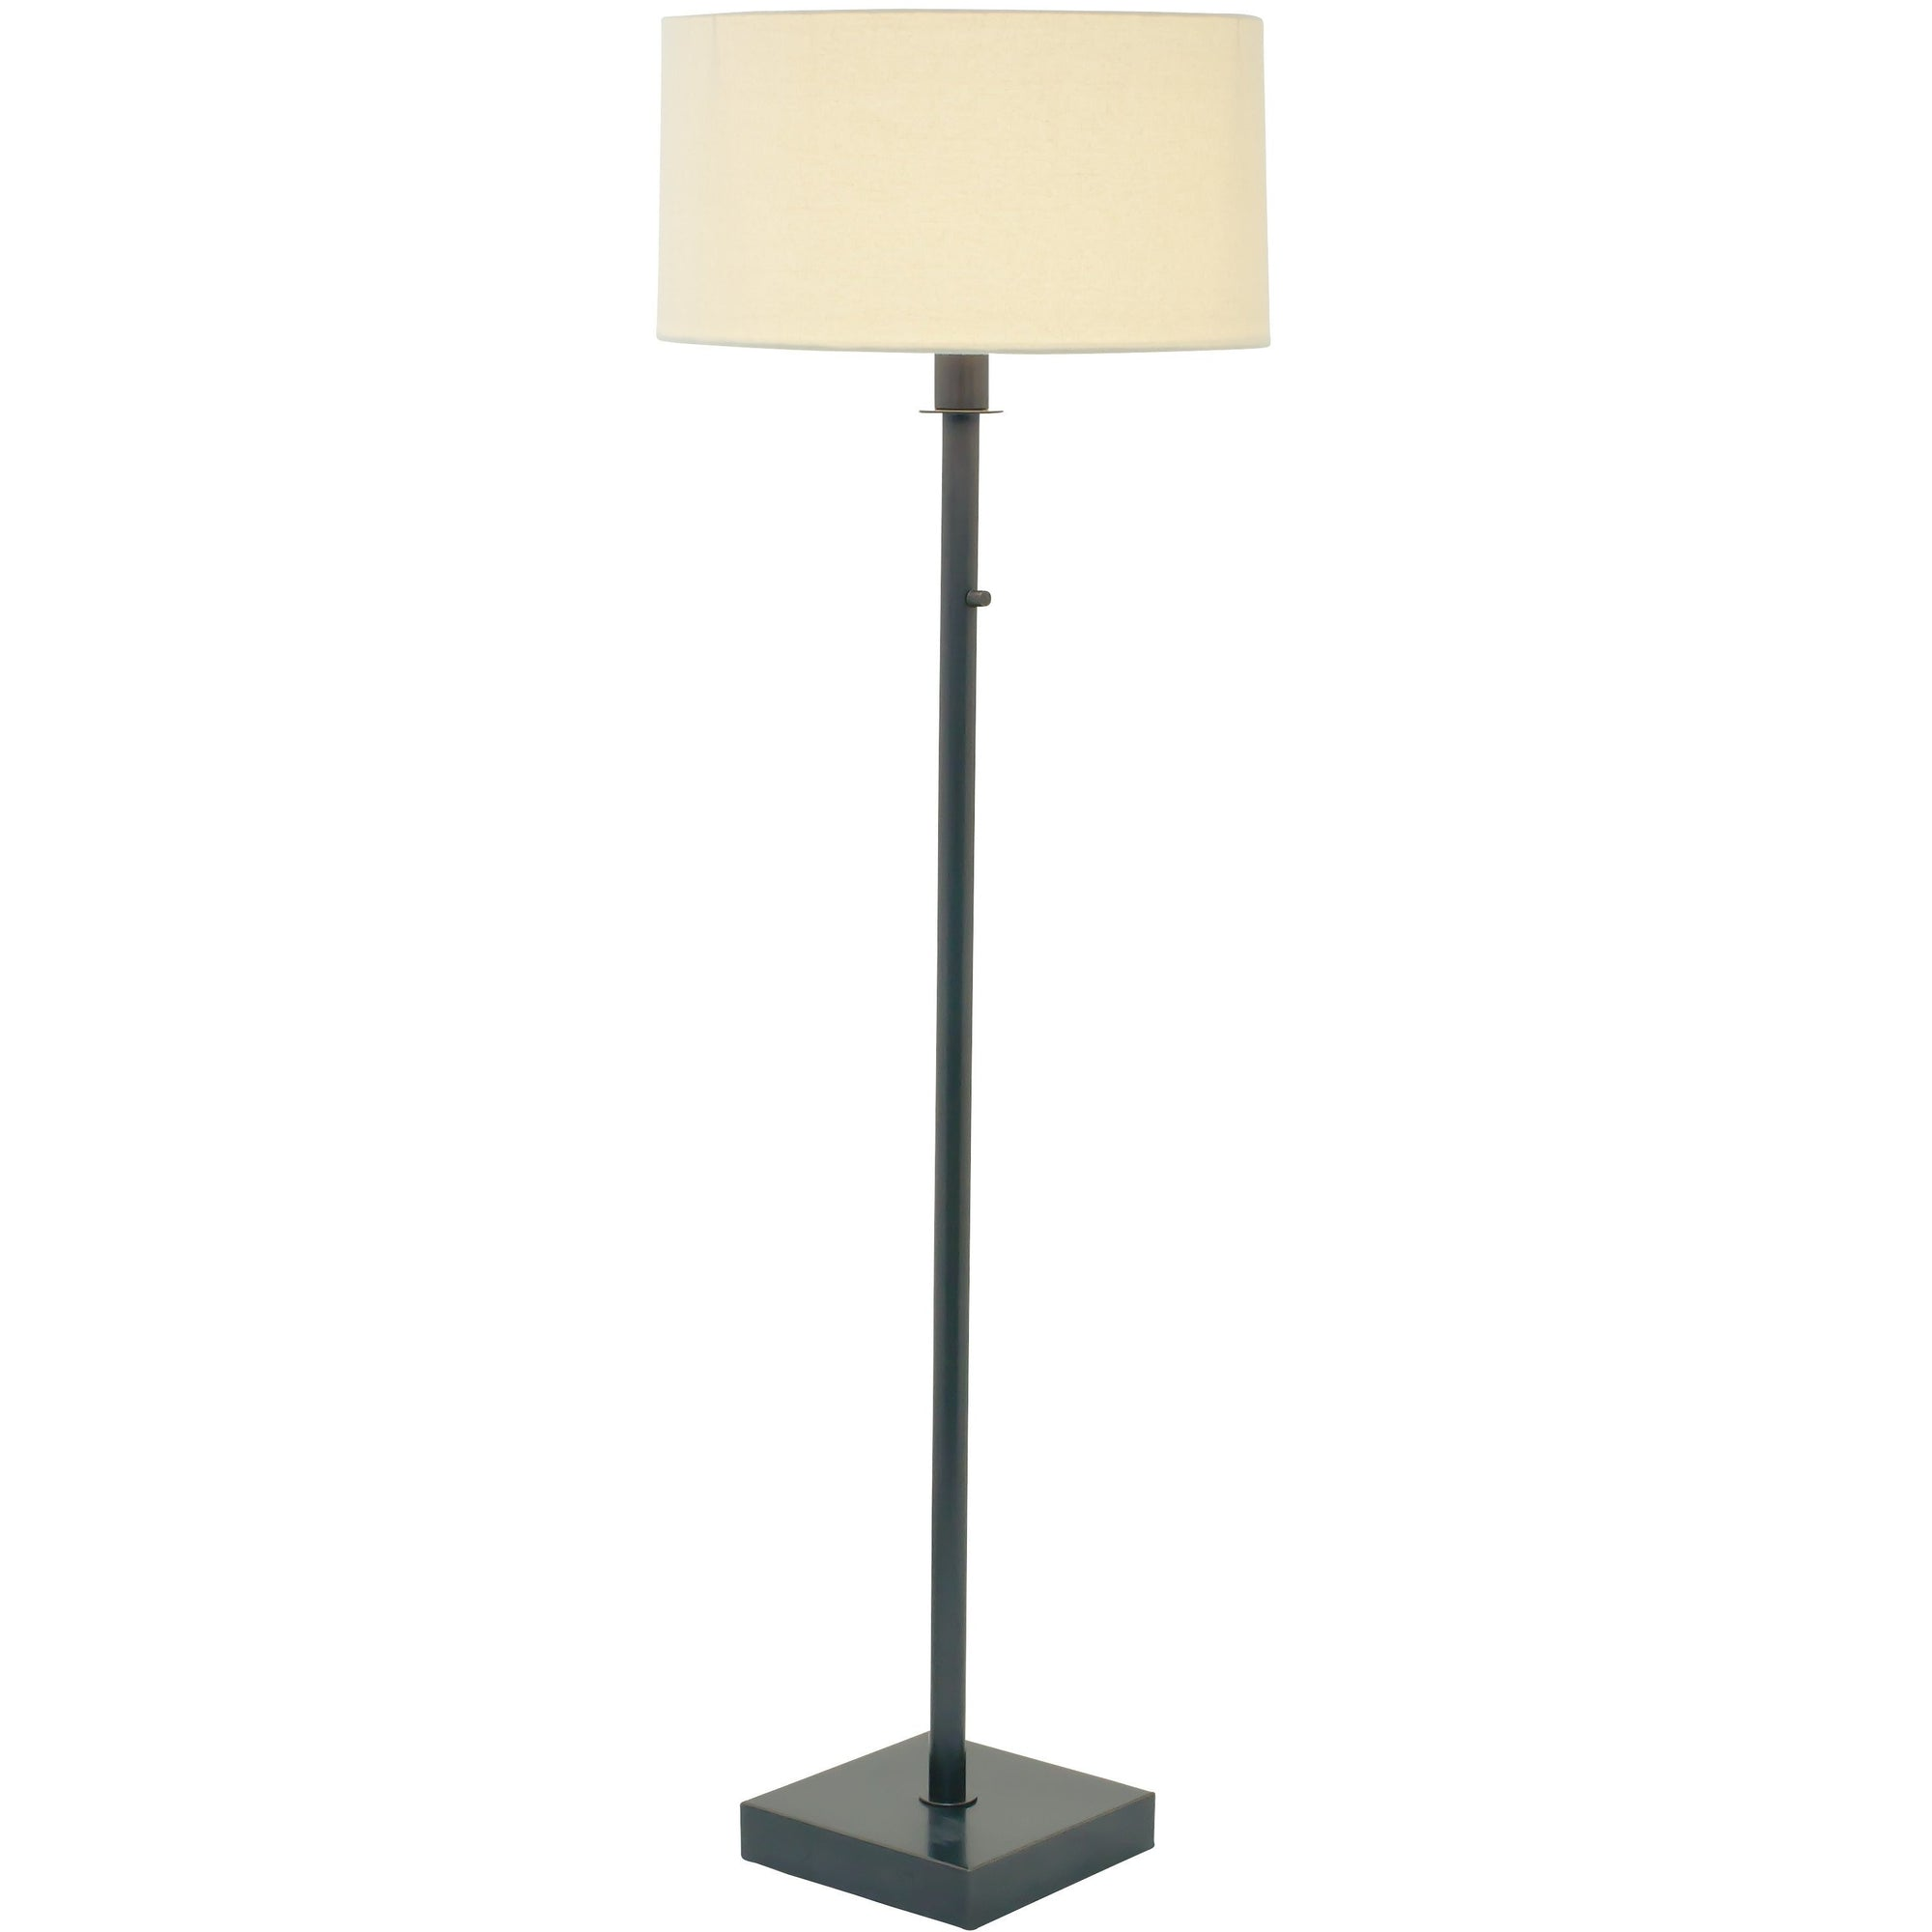 House Of Troy Floor Lamps Franklin Floor Lamp with Full Range Dimmer by House Of Troy FR700-OB